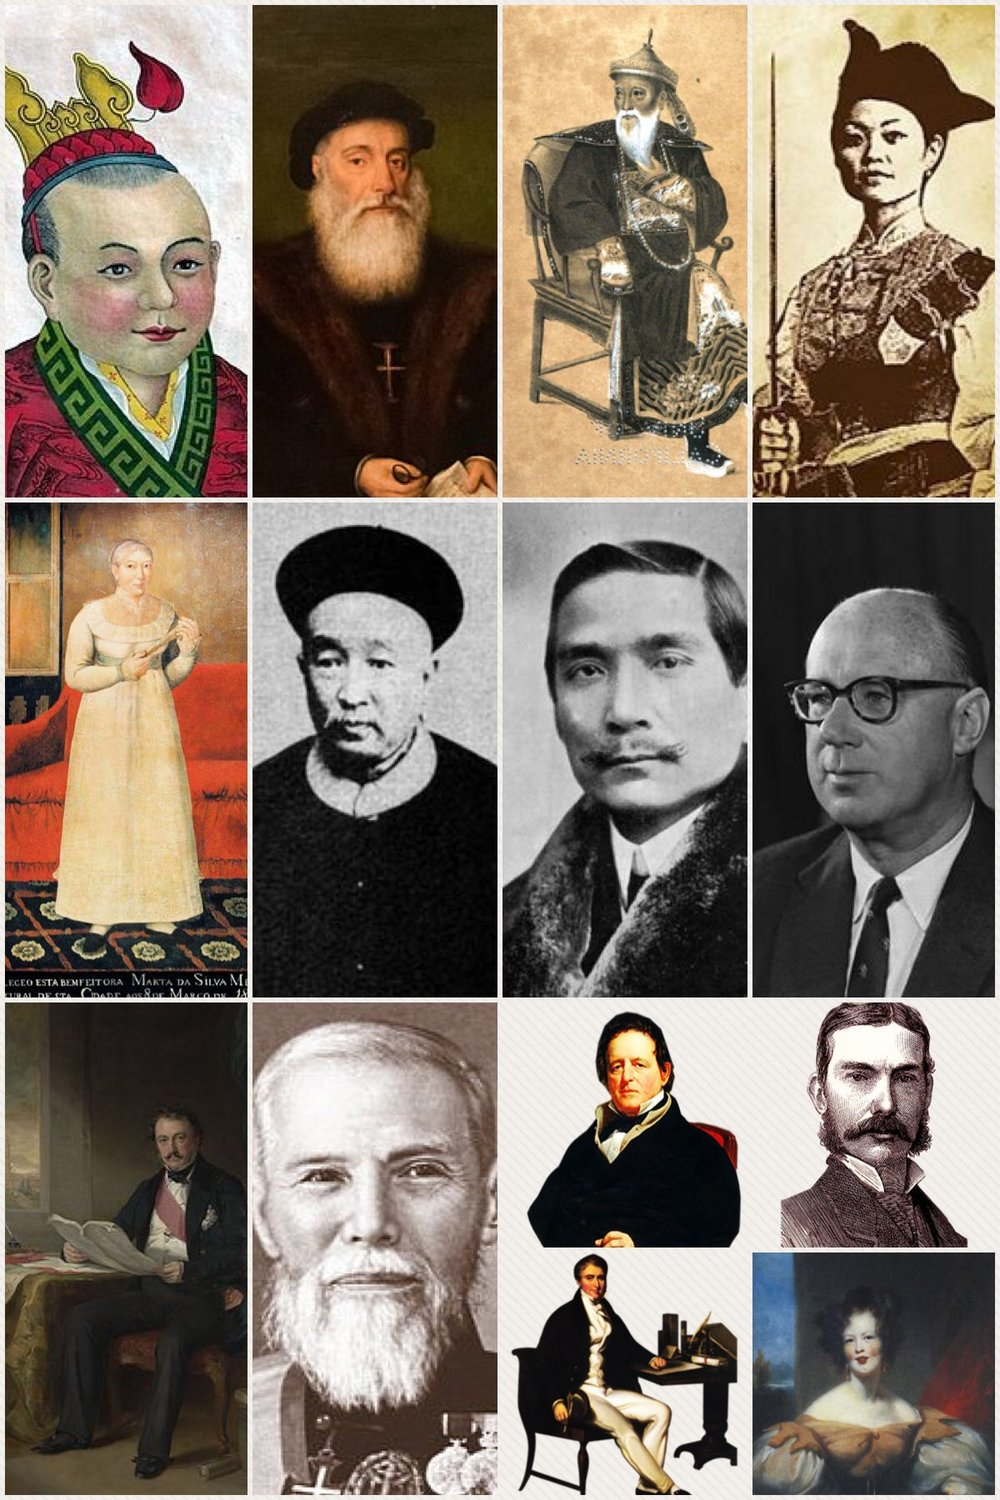 Just a few of the notable personalities I regularly introduce on my private Hong Kong walking tours: (1st Row) Song Emperor Zhao Bing (the boy emperor), Vasco Da Gama (the explorer), Commissioner Lin Zexu (the Emperor's mandarin), Madam Zheng Shih (the Pirate Queen) (2d Row) Martha Cuijk van Mierop (from orphan to benefactress), Zheng Guanying (the compradore scholar of Macau), Sun Yat Sen (the founding father of modern China), Sir John James Cowperthwaite (the architect of prosperity); (3d Row) Henry Pottinger (the Governor), Sir Robert Ho Tung (the Grand Old Man of Hong Kong), Warren Delano (an American trader), Charles Elliot (a much misunderstood figure), William Jardine (the Taipan), Harriet Low (an American in old Macau). There are of course many others...